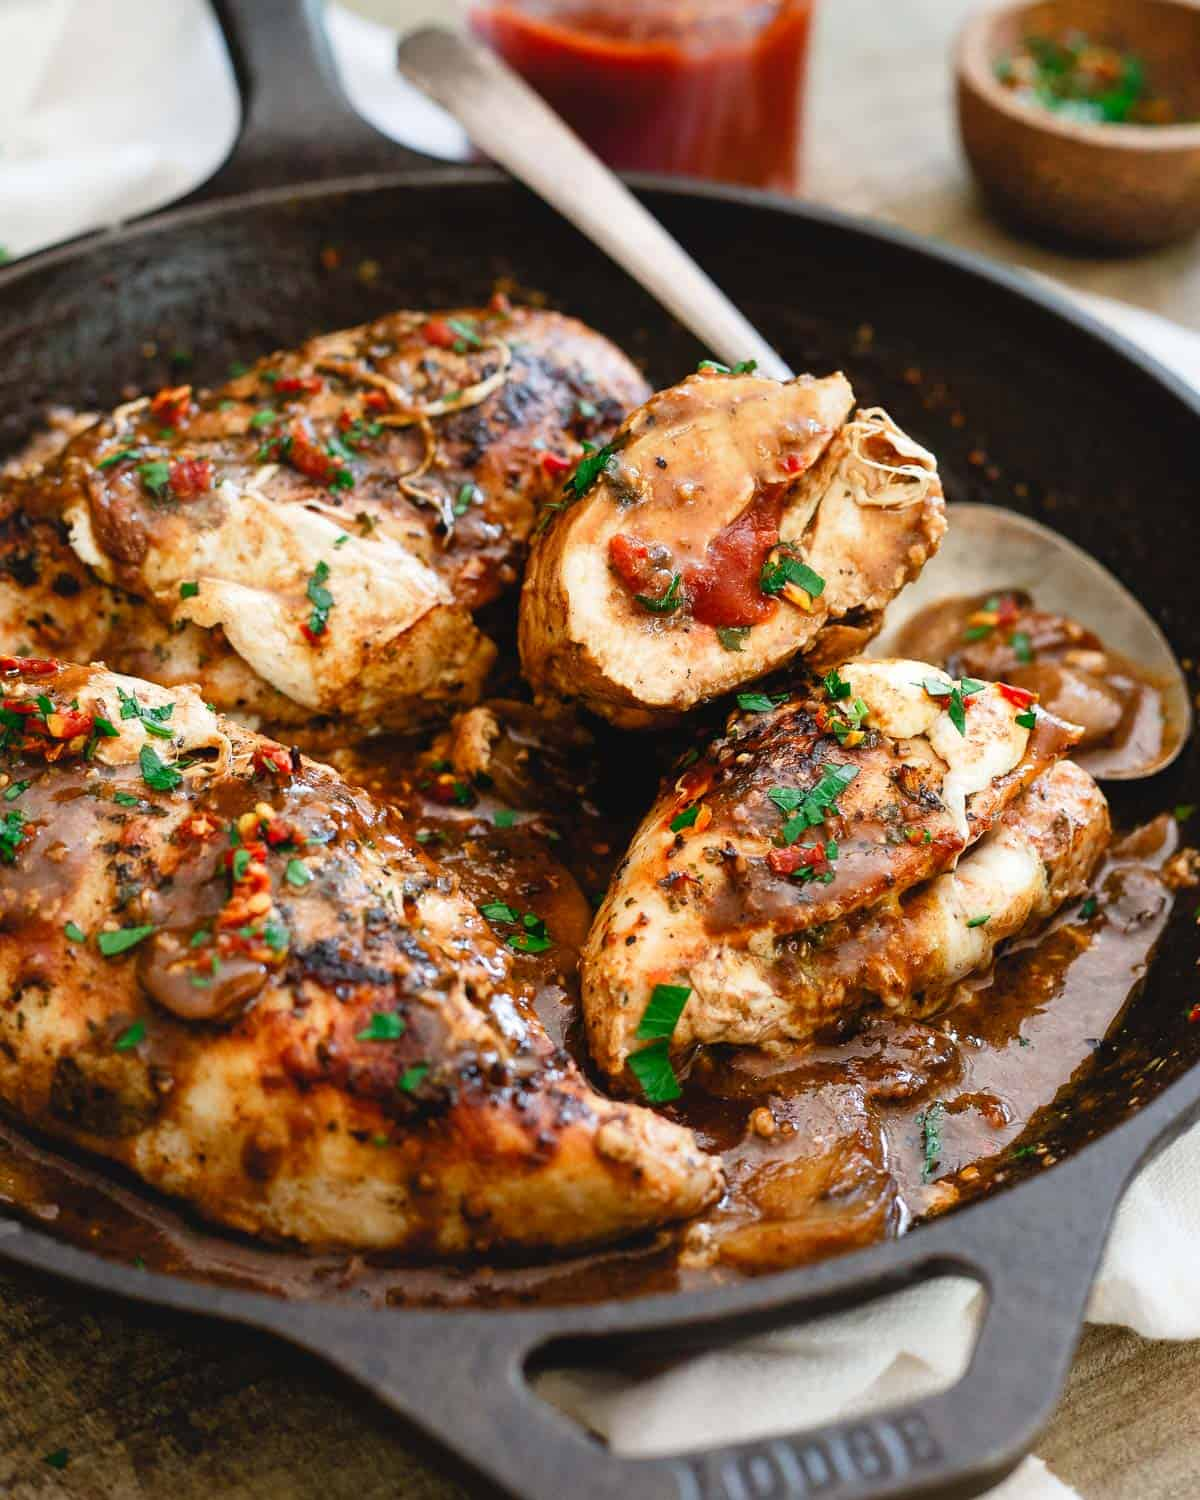 Oozing with melted mozzarella and tomato butter, this stuffed chicken marsala is a deliciously decadent dinner.